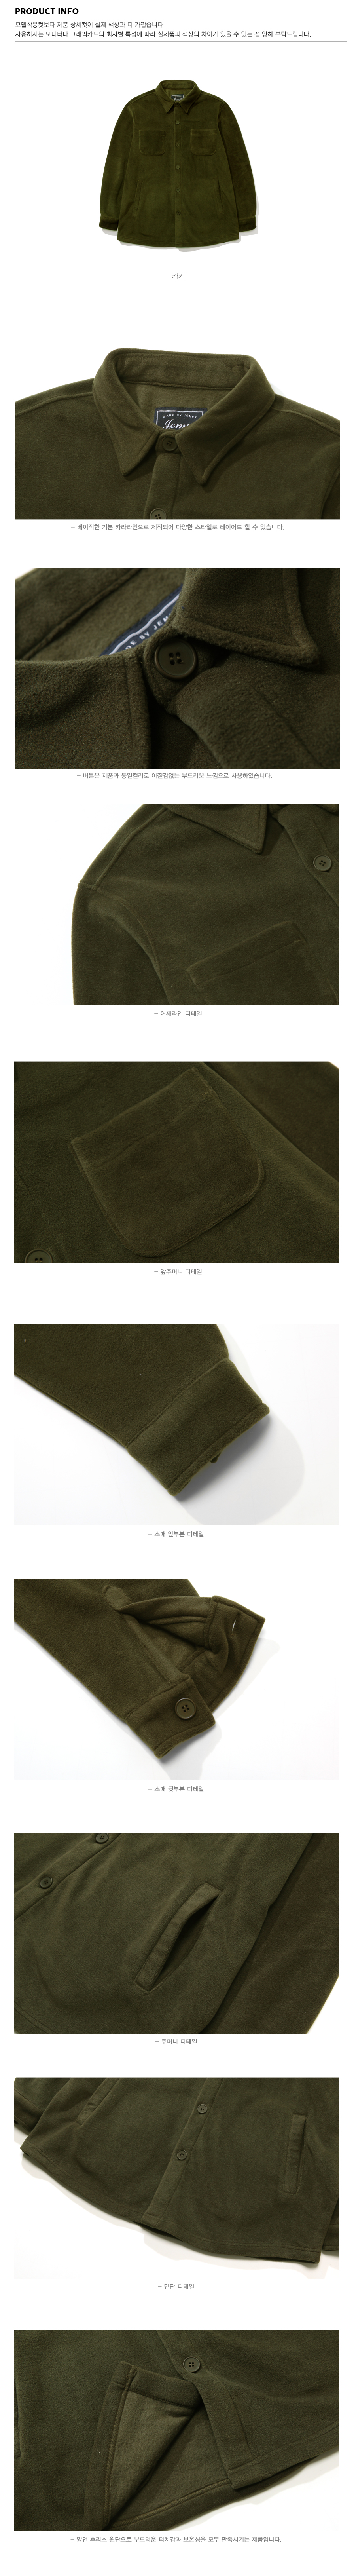 20170921_fleece_shirts_detail_khaki.jpg